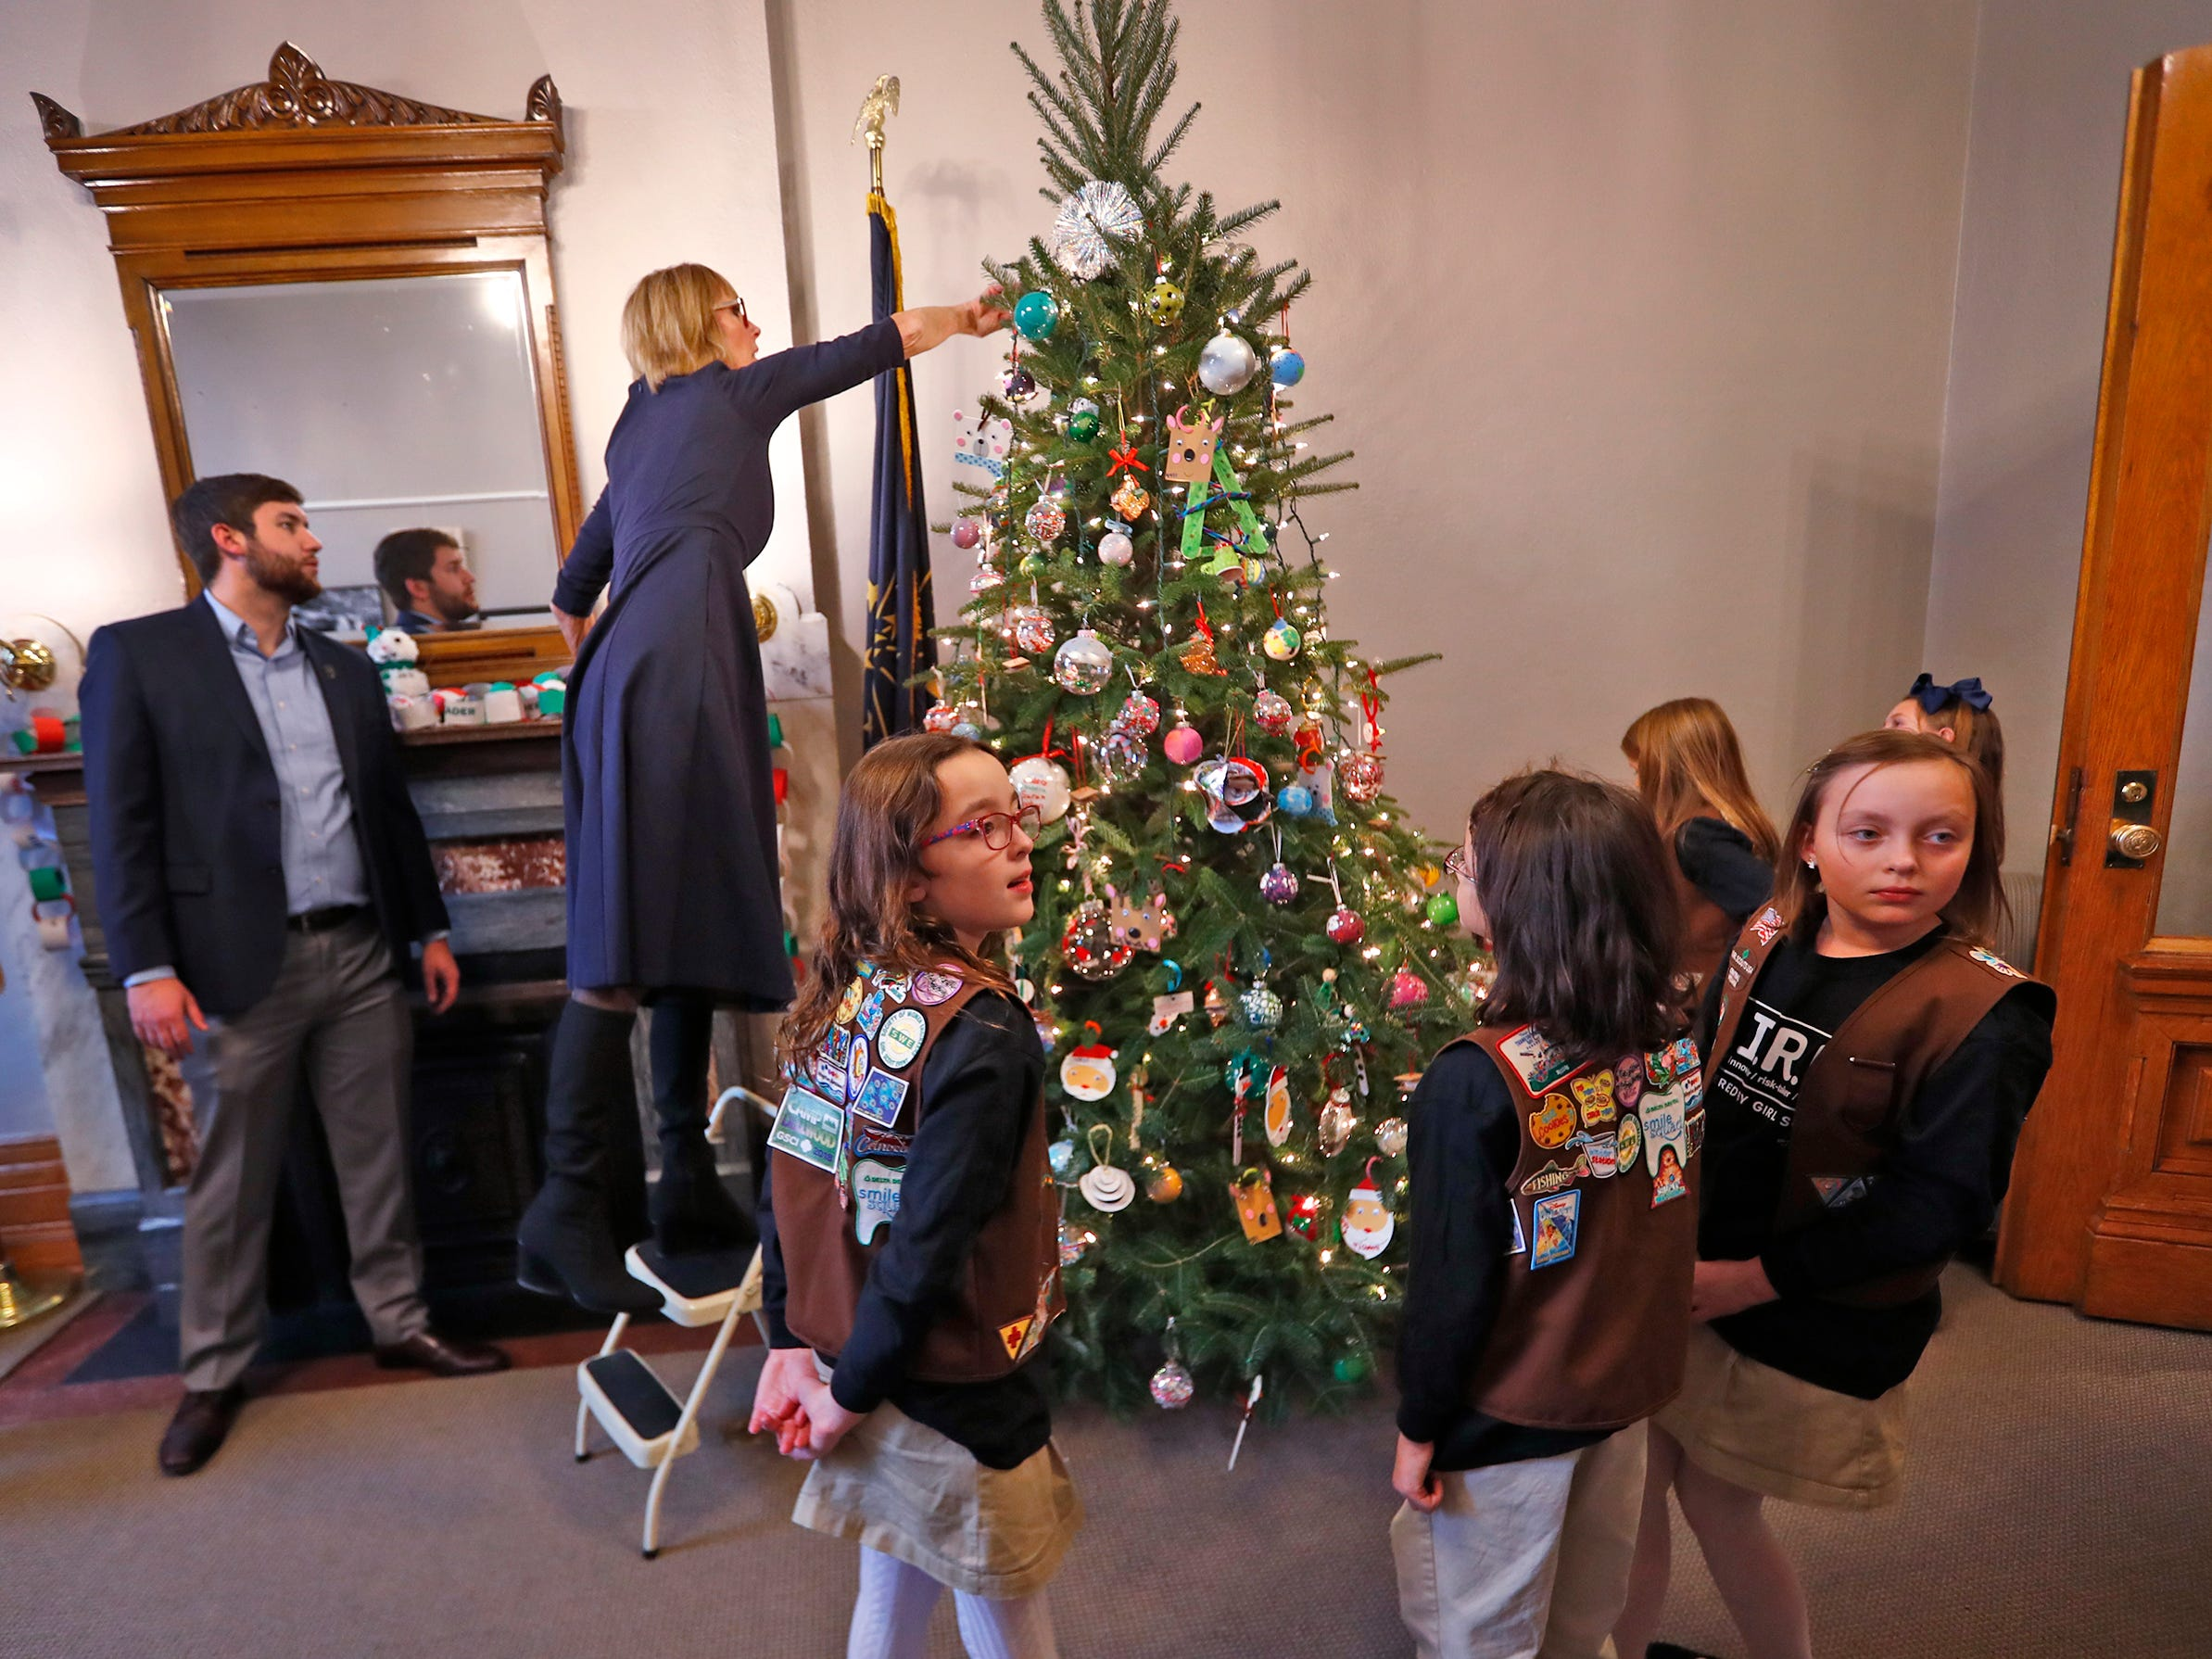 Lieutenant Governor Suzanne Crouch reaches to put a finishing touch on her Statehouse office tree, as she is joined by Girl Scouts to decorate her tree for the holidays, Wednesday, Dec. 5, 2018.  They used ornaments created by Girl Scouts from across Central Indiana for the tree.